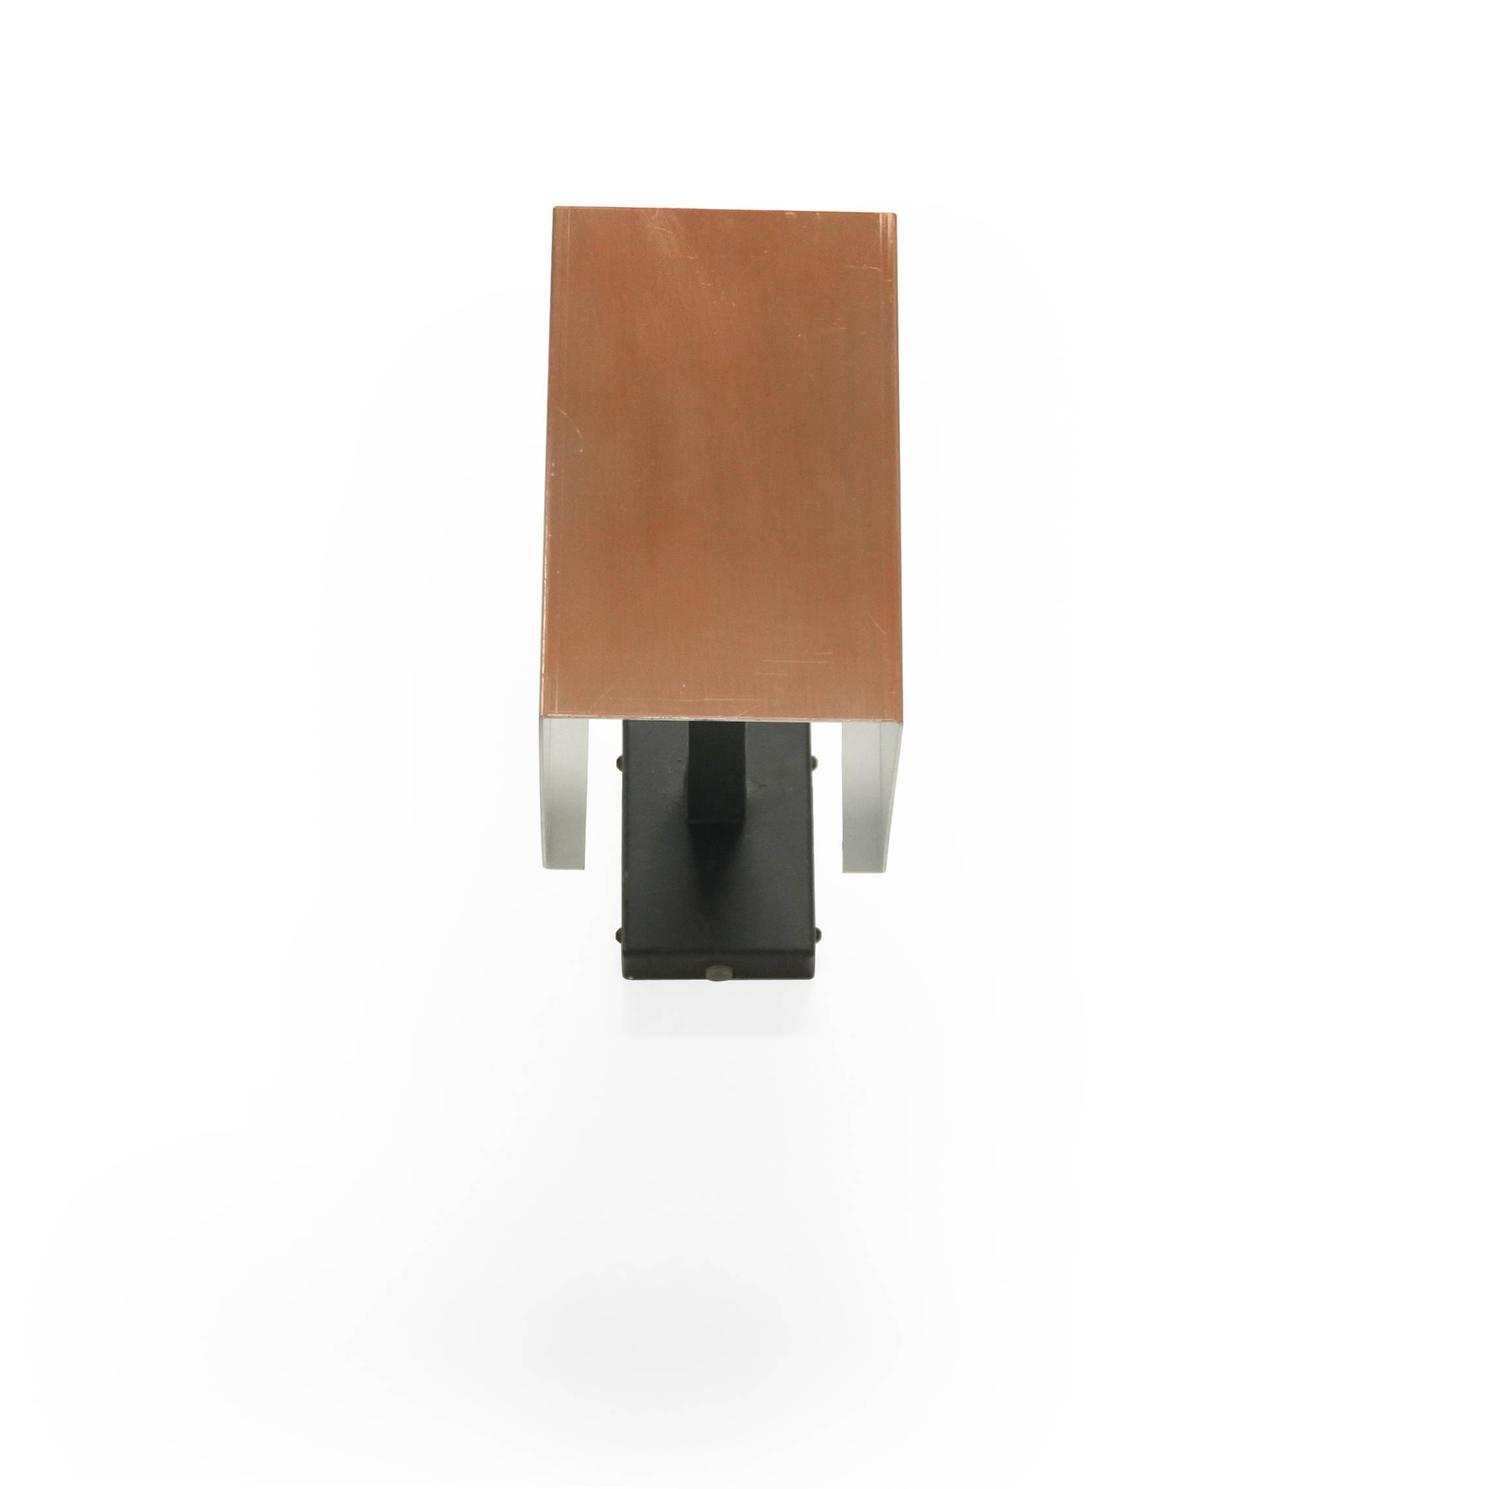 Set of Fourteen Scandinavian Wall Lights in Copper by Finn Lunde, 1970s For Sale at 1stdibs